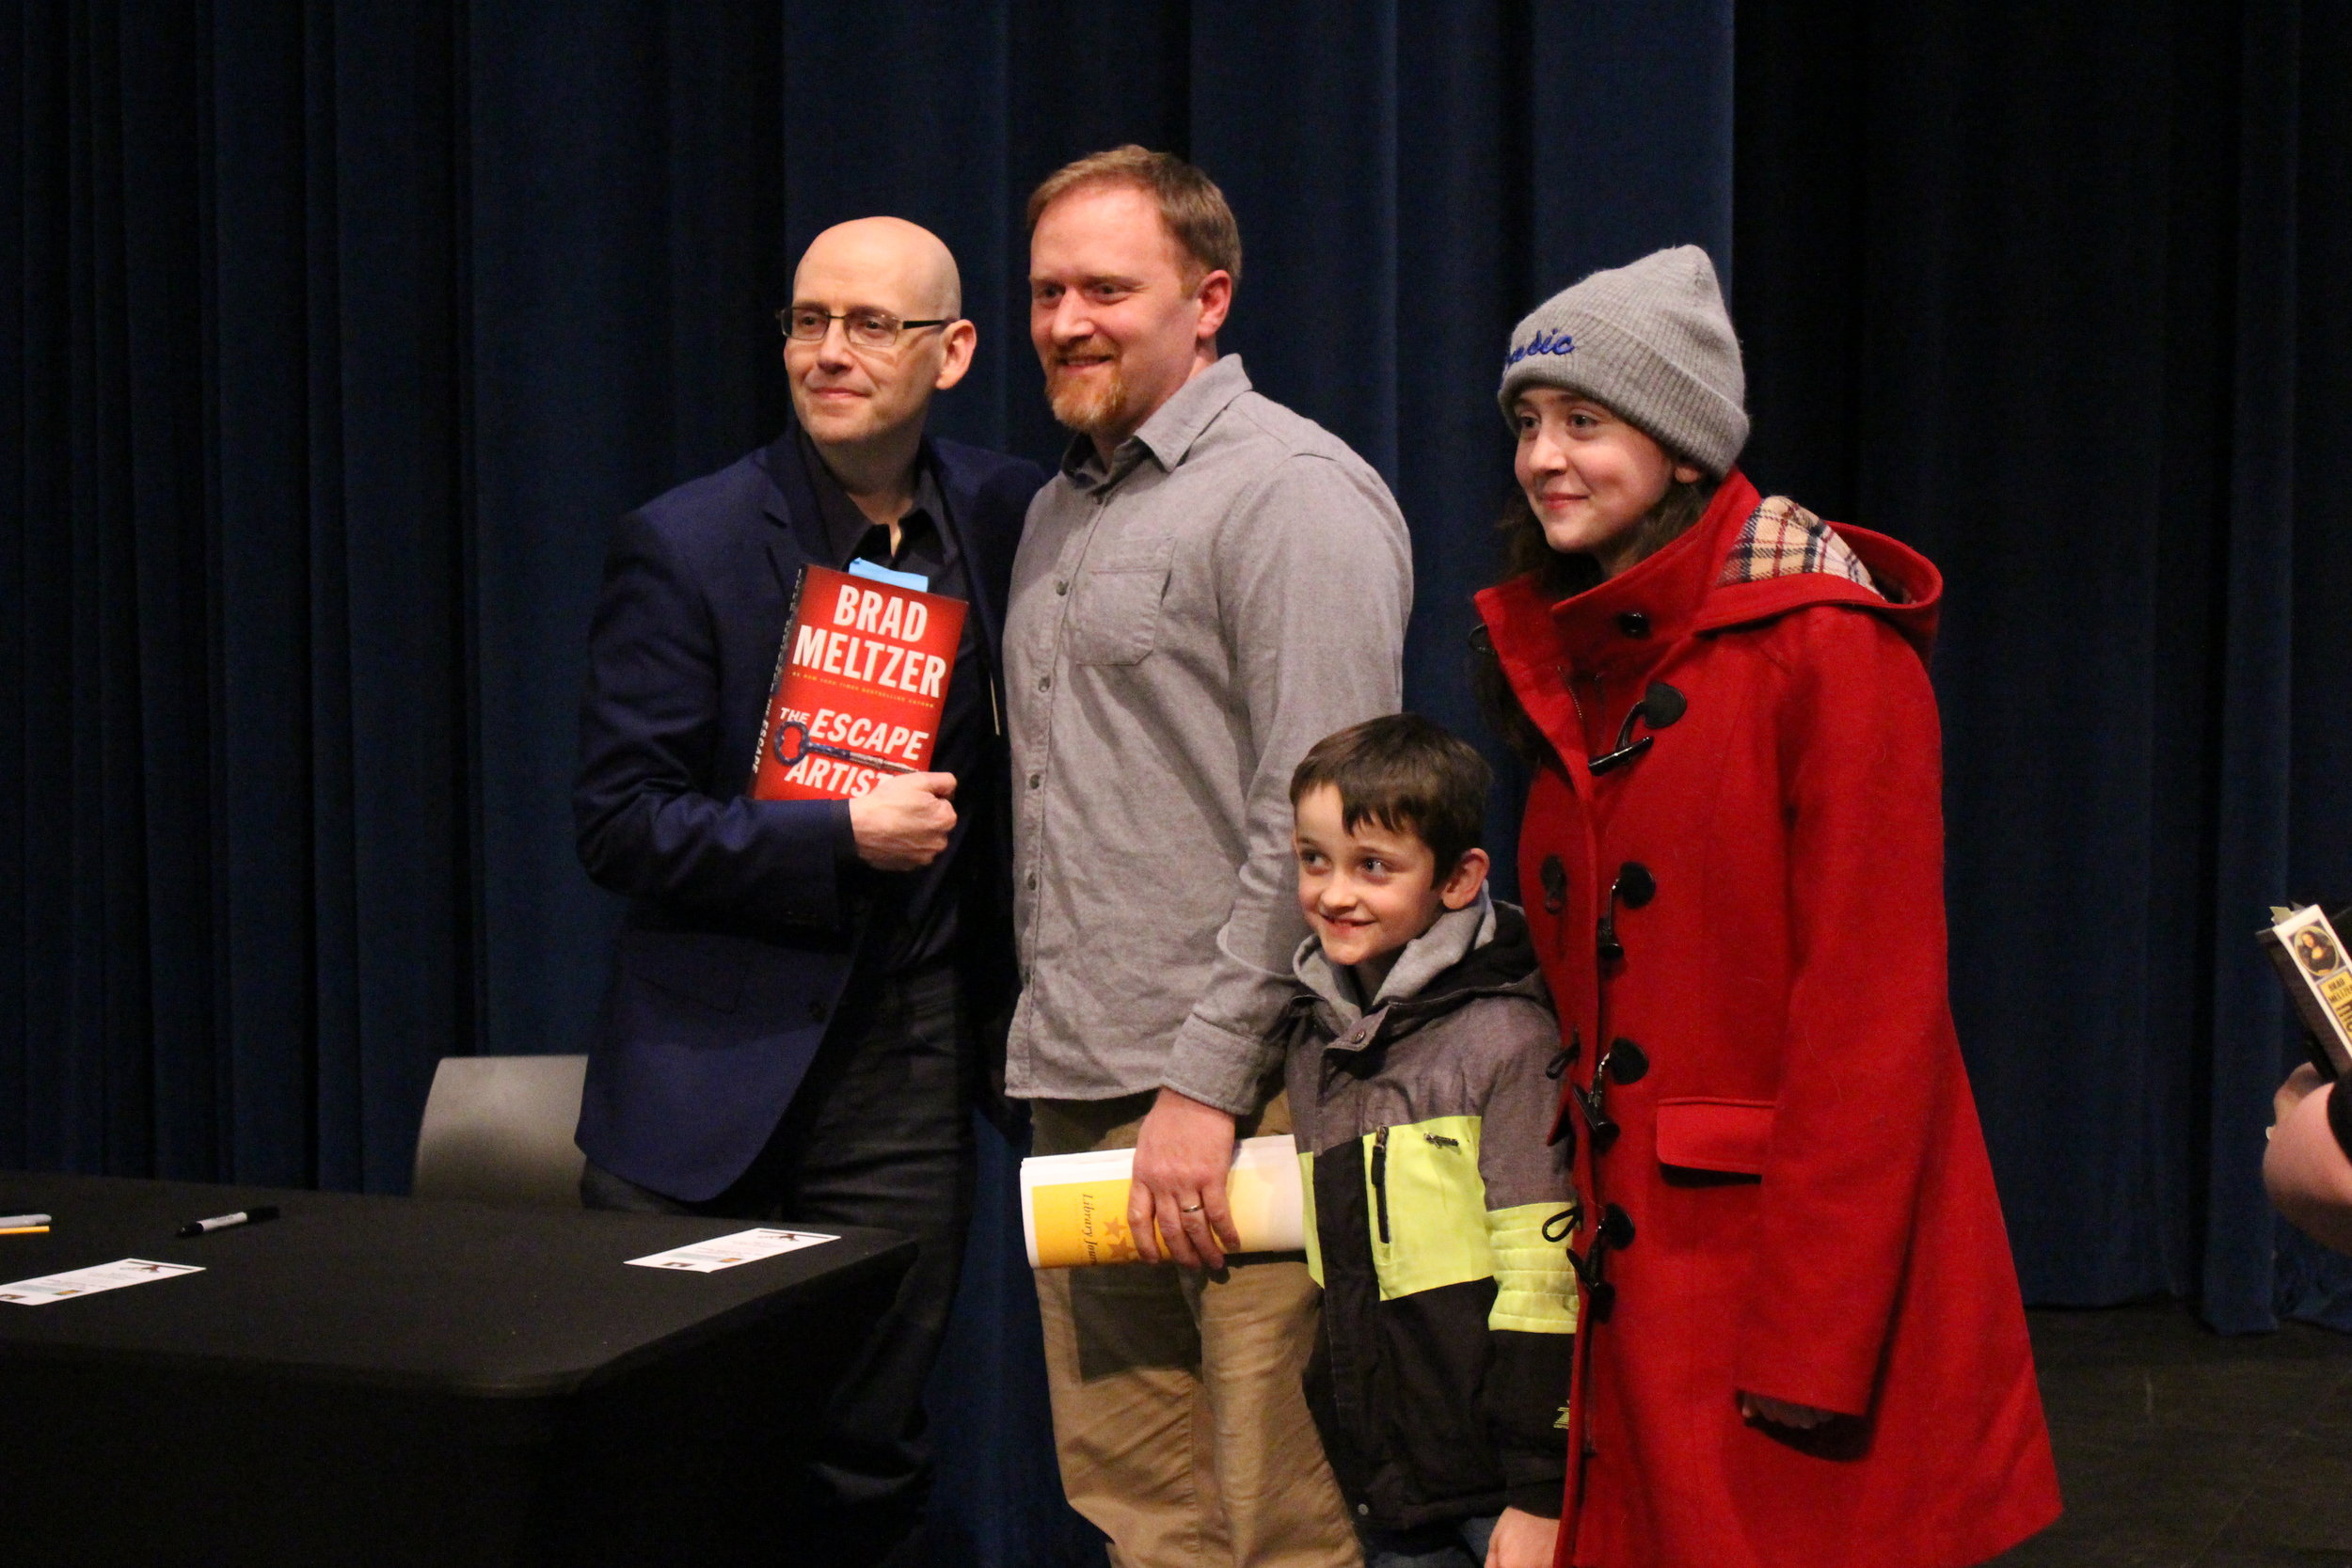 Brad Meltzer poses for a photo.